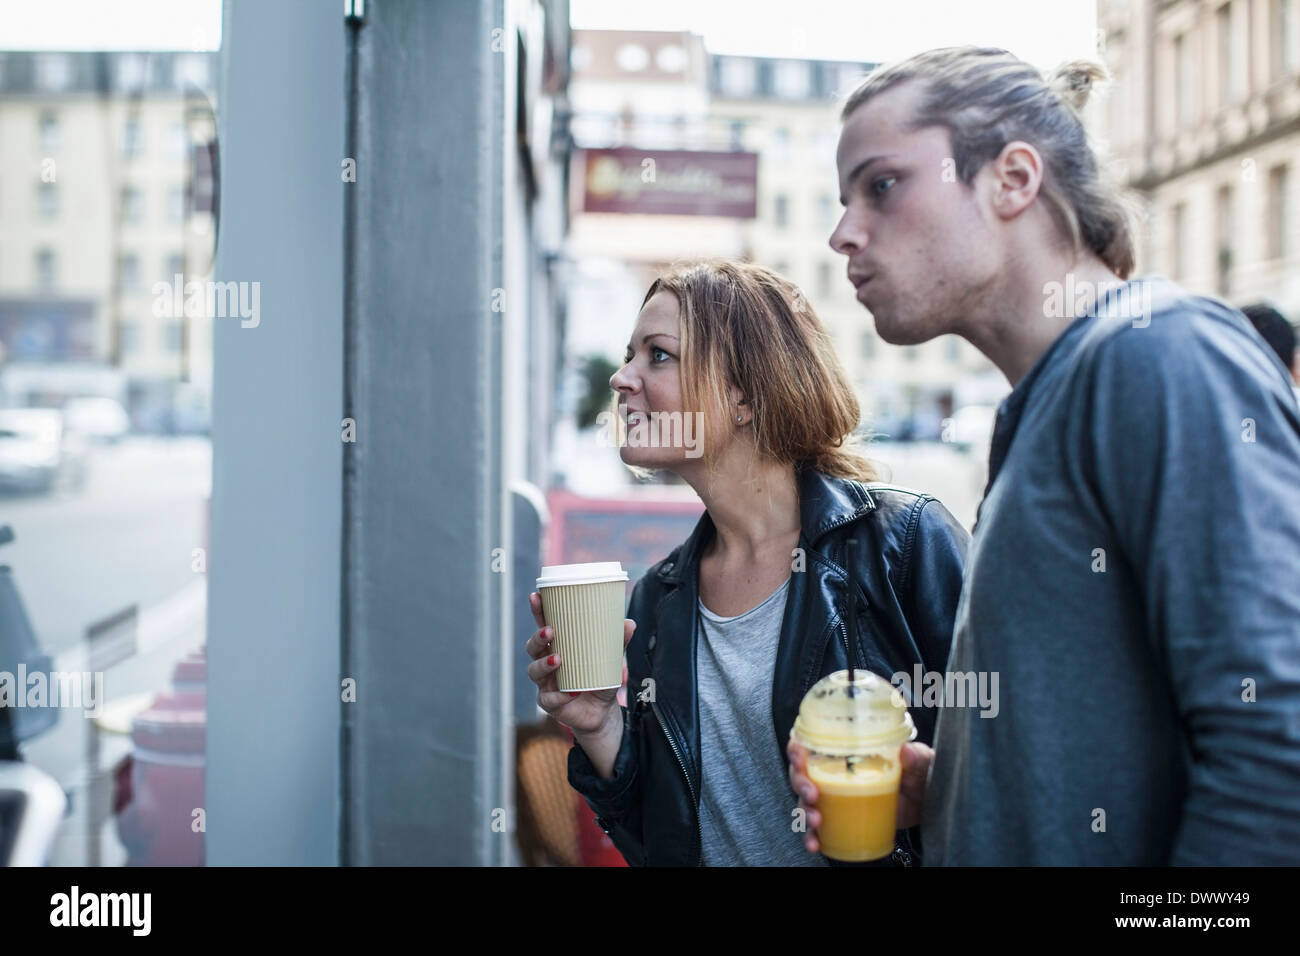 Couple holding disposable cups while window shopping - Stock Image